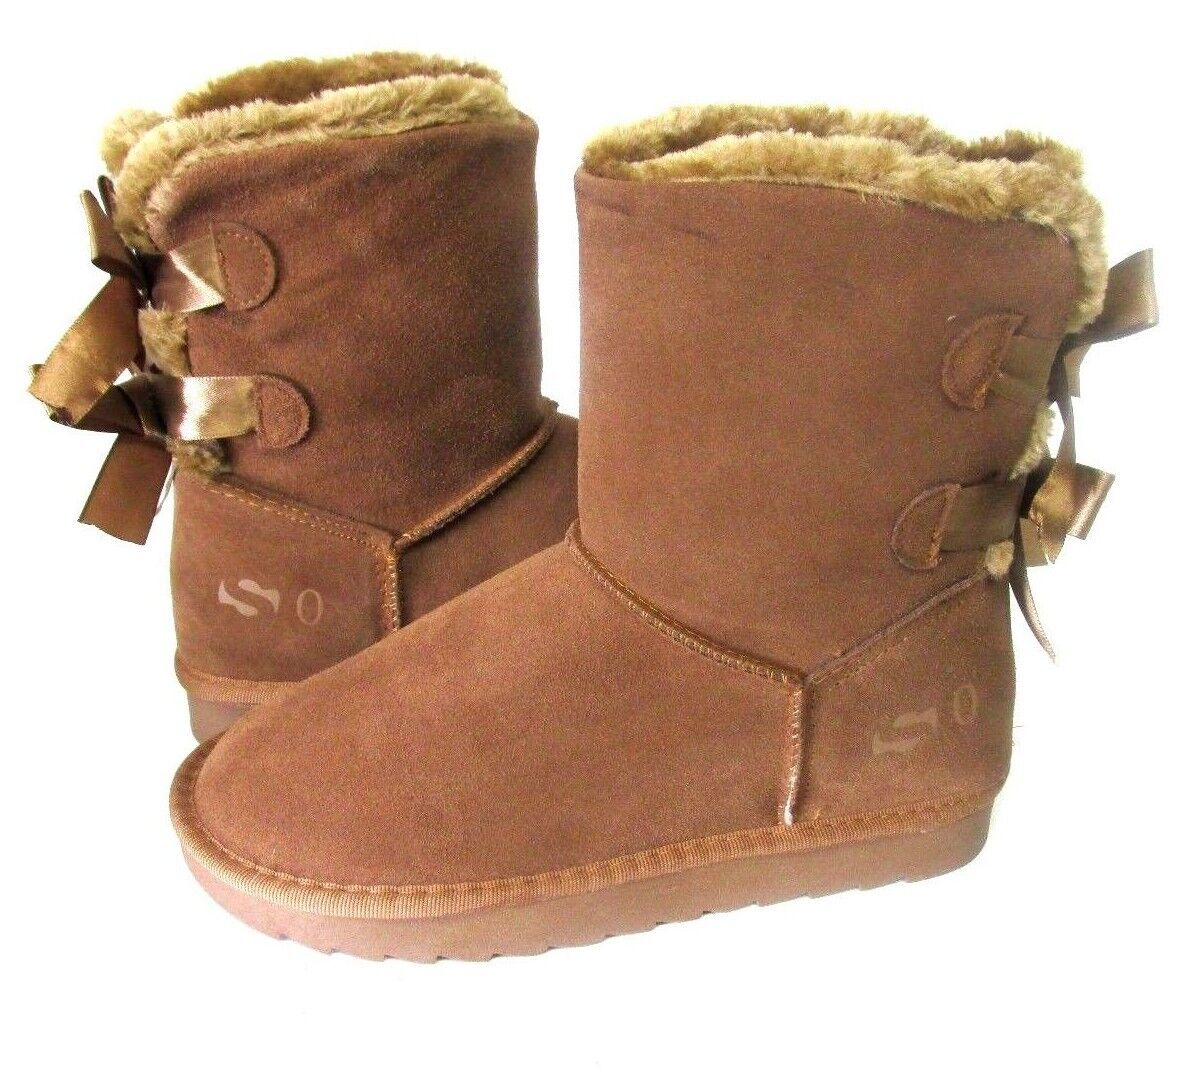 NEW WOMEN SO BRAND CLASSIC TOW BOWS BOOT TAN 3451 ORIGINAL